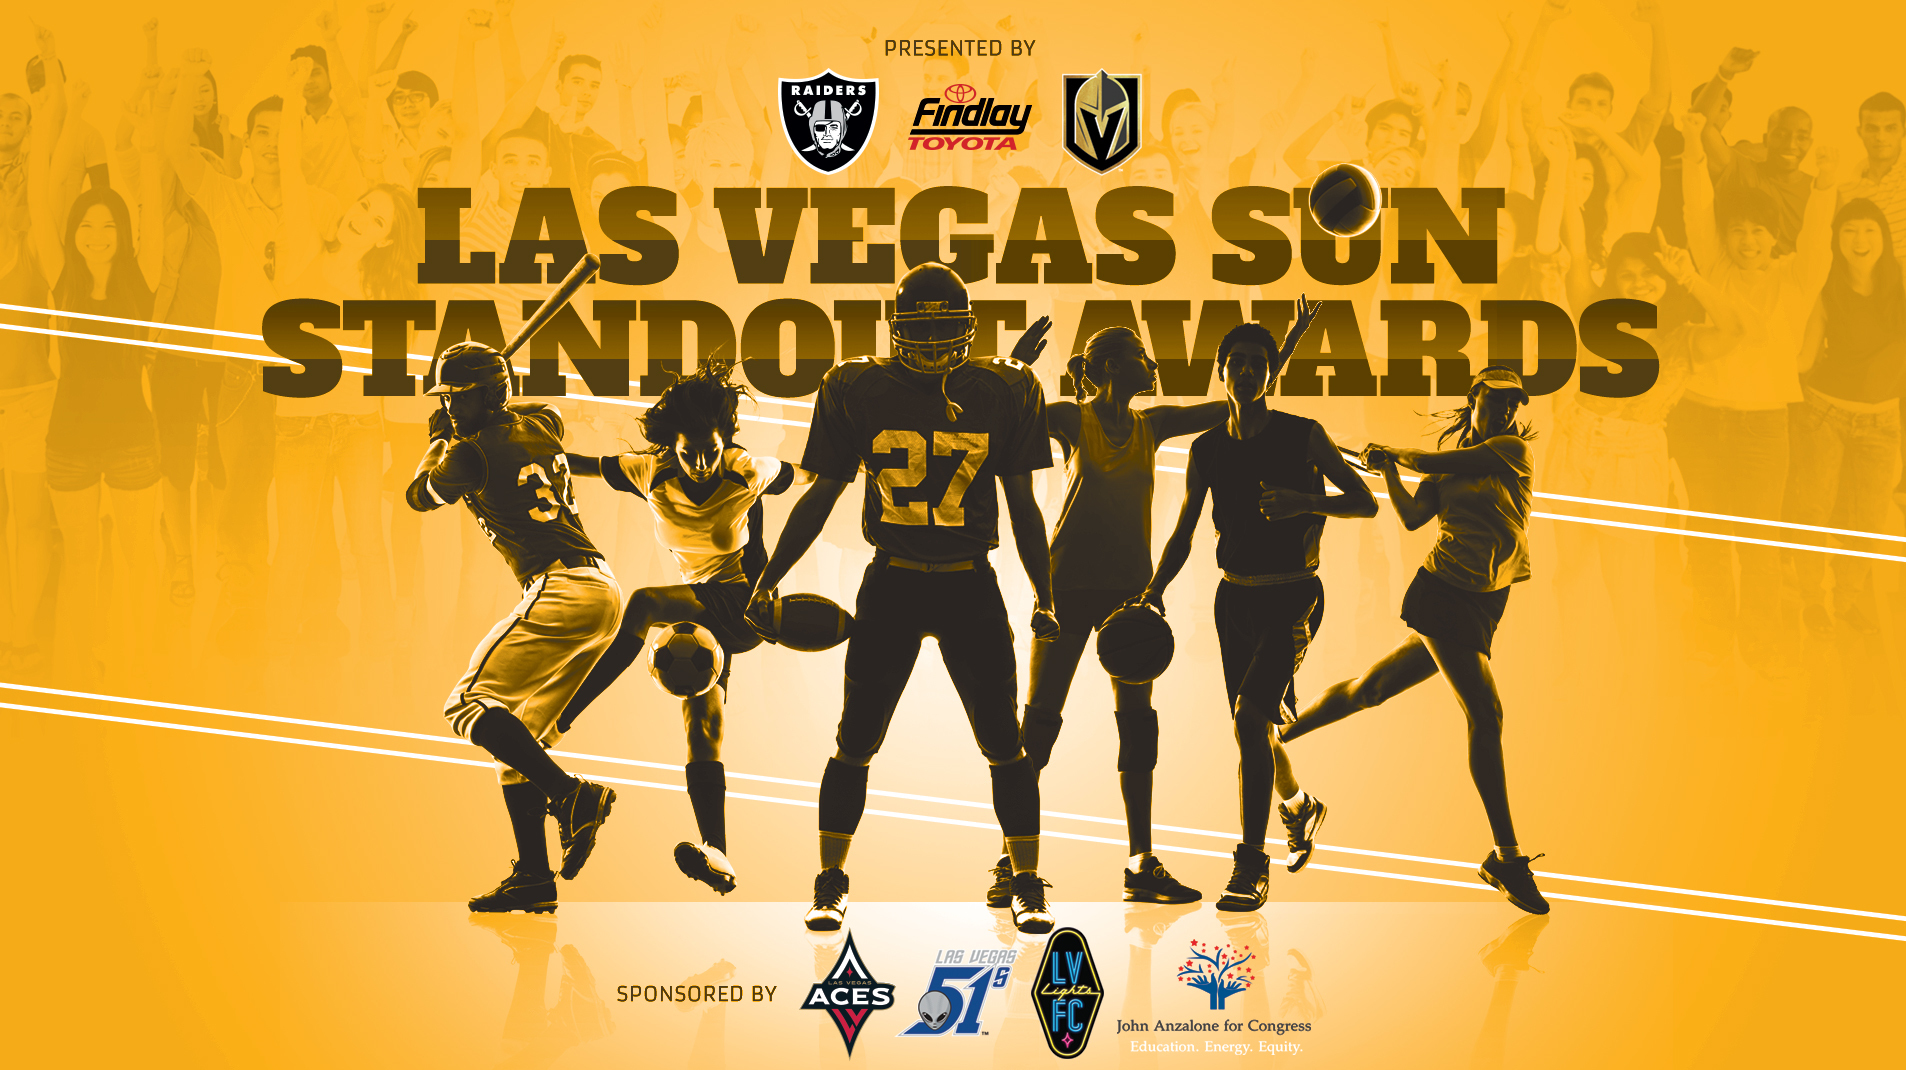 Interview 3 Las Vegas Sun Standout Awards Greenroom On Livestream